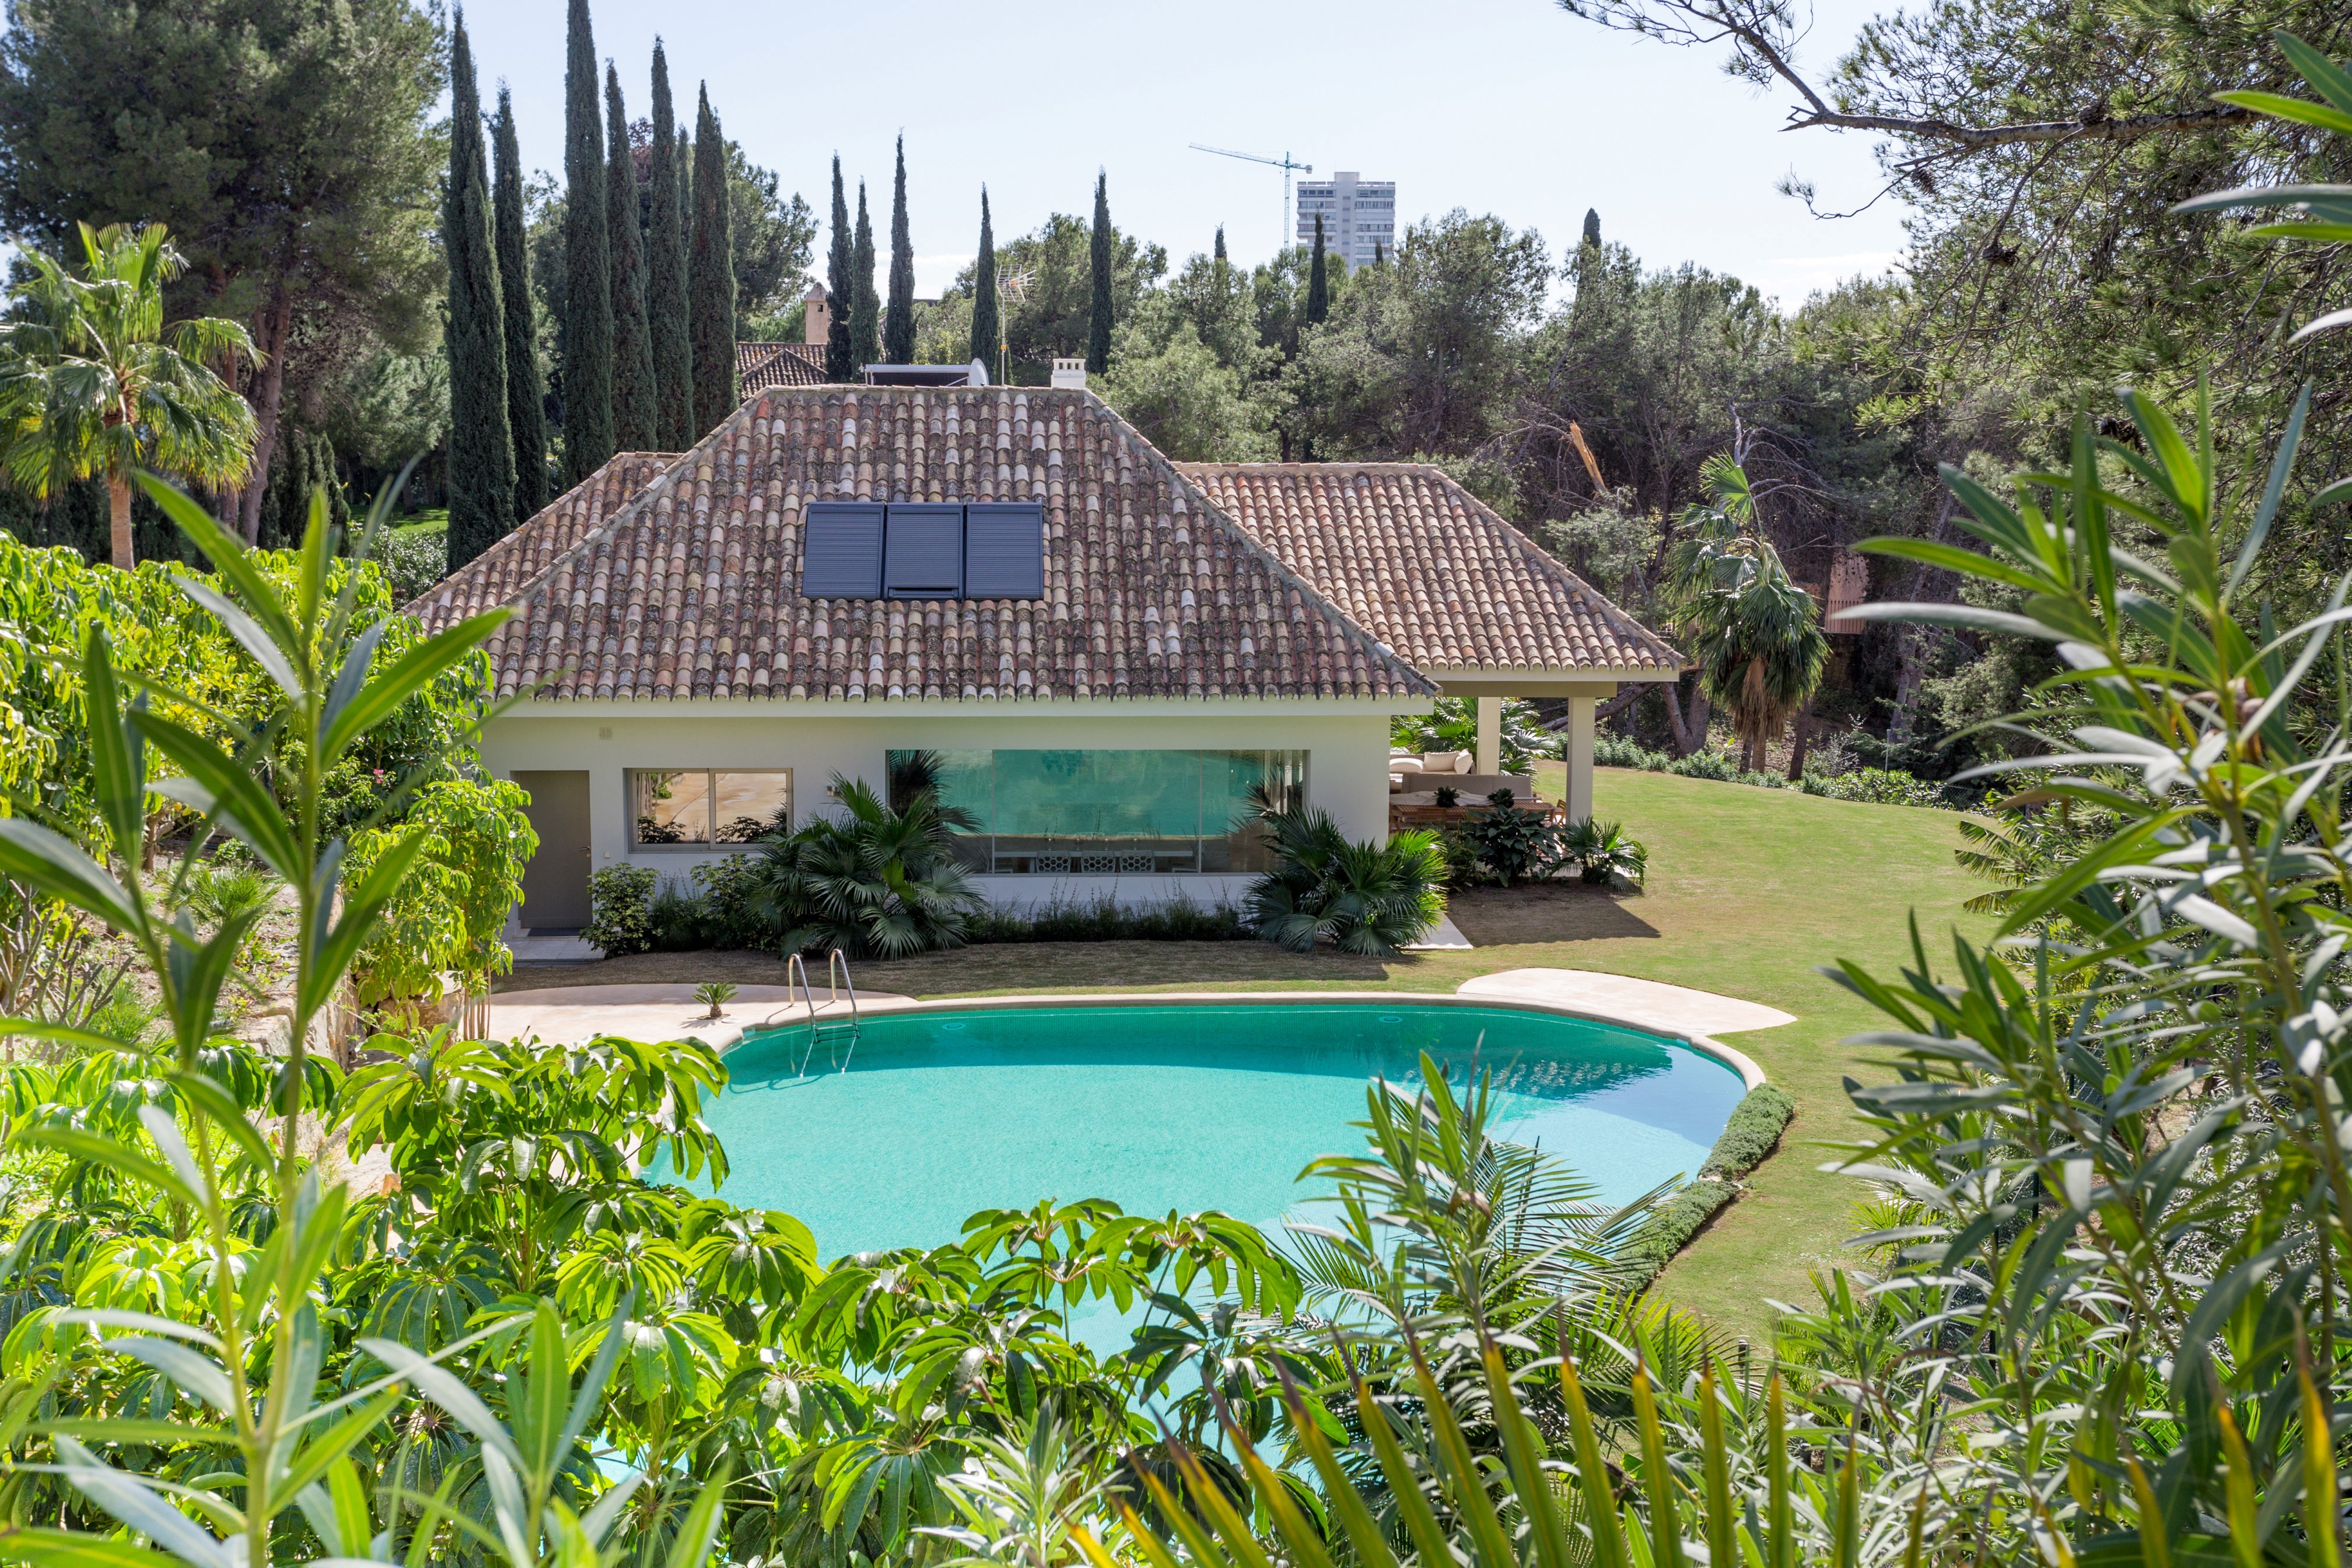 Priced to sell: 5-bed Frontline golf villa in Rio Real 1.975.000€